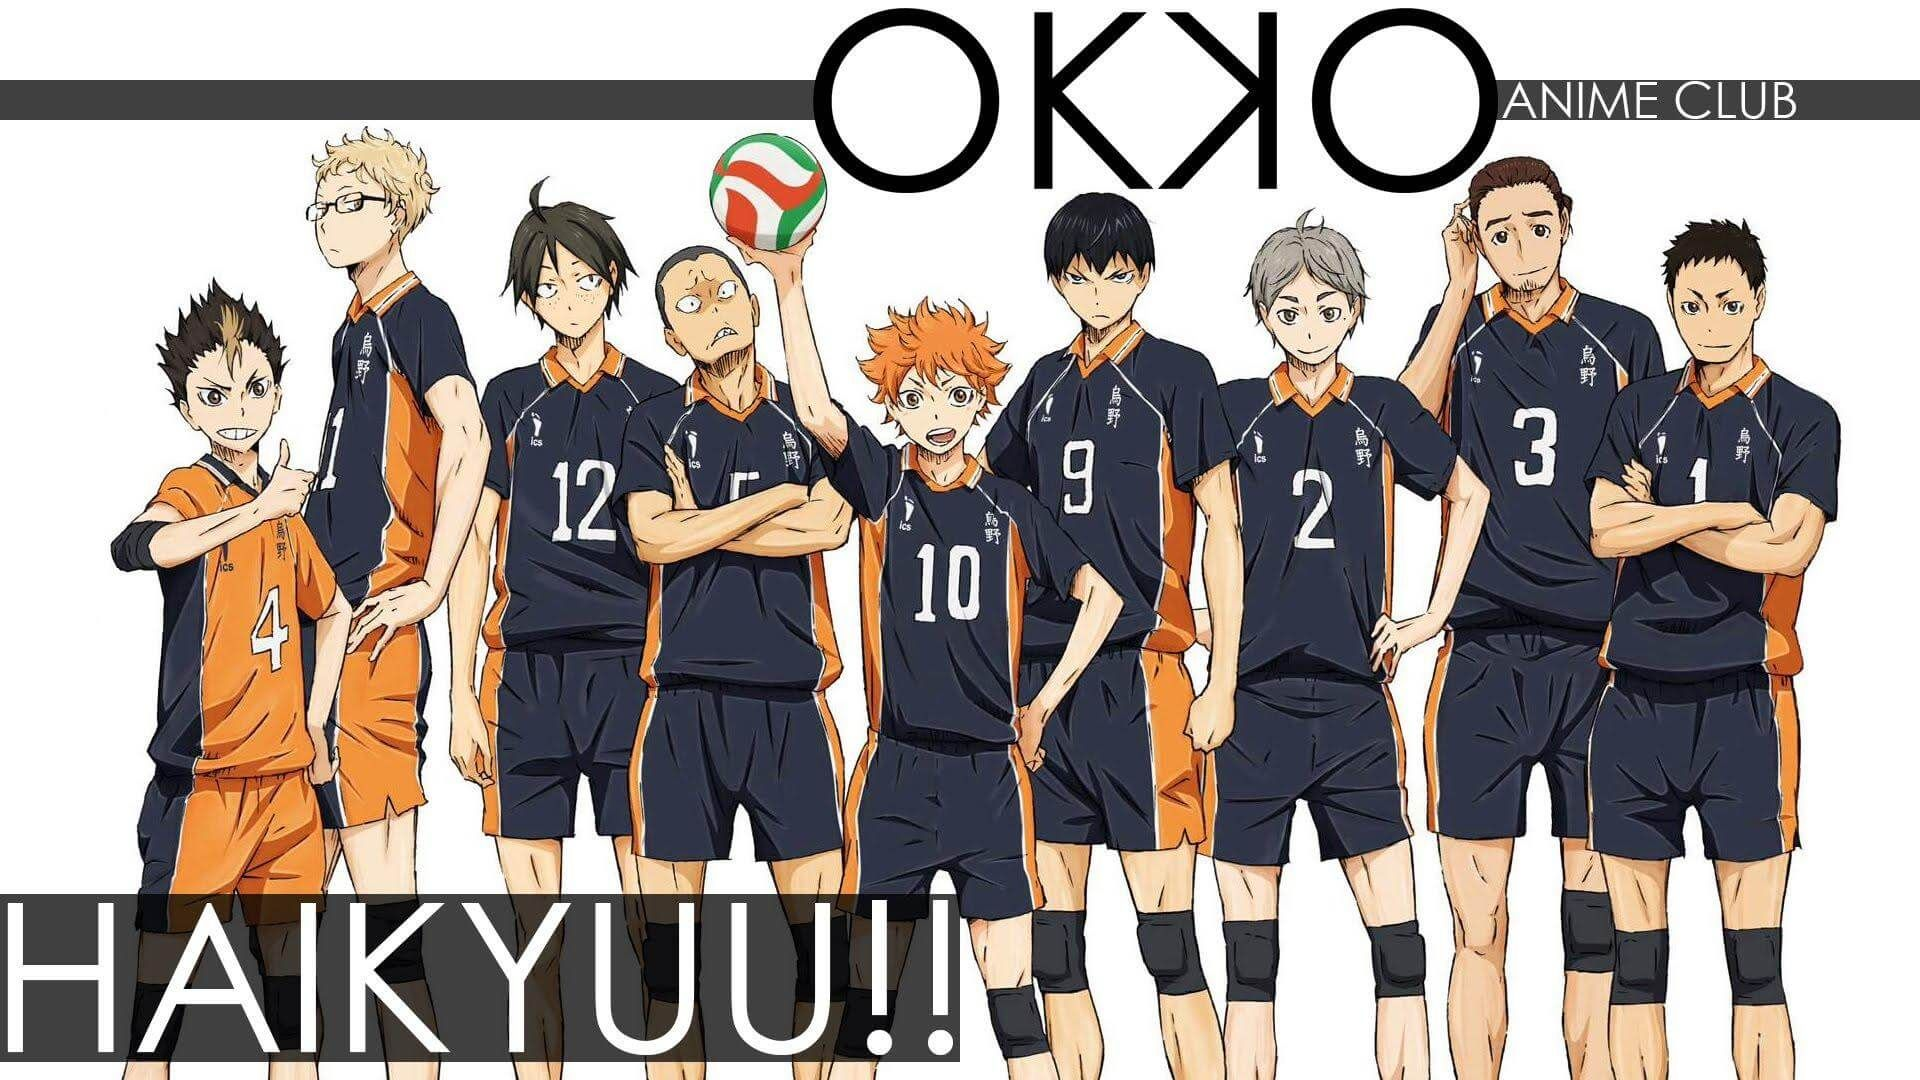 Anime Volleyball Haikyuu!! The Whole Team